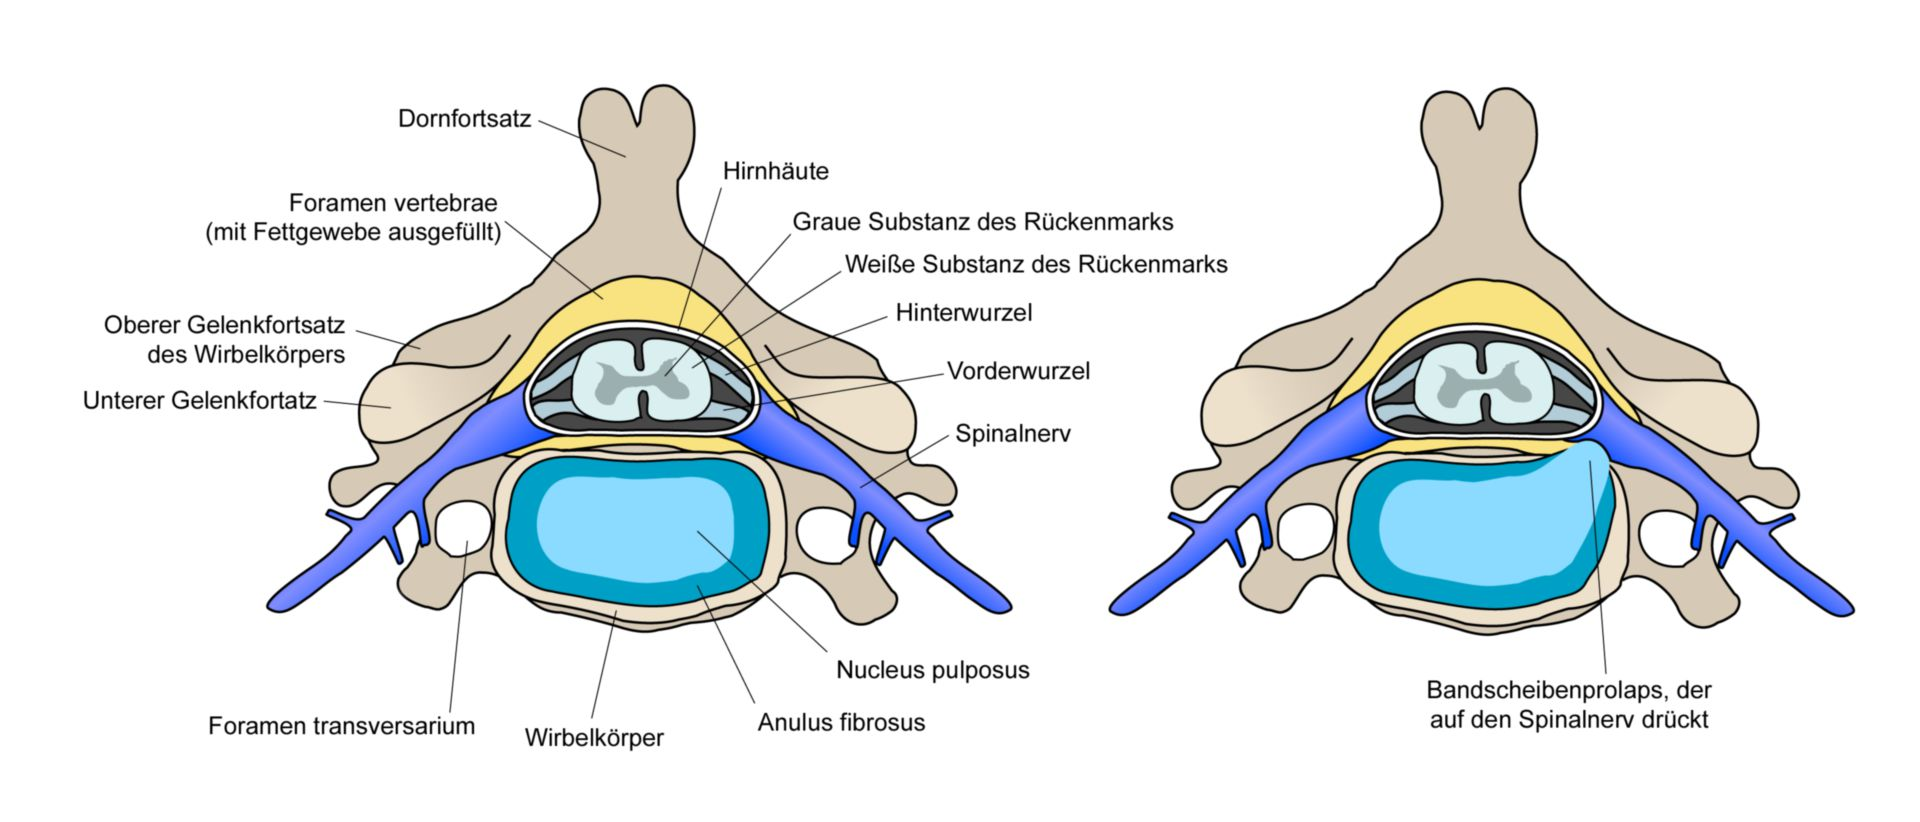 Cross section of structures of the spine (left), slipped disk (right)